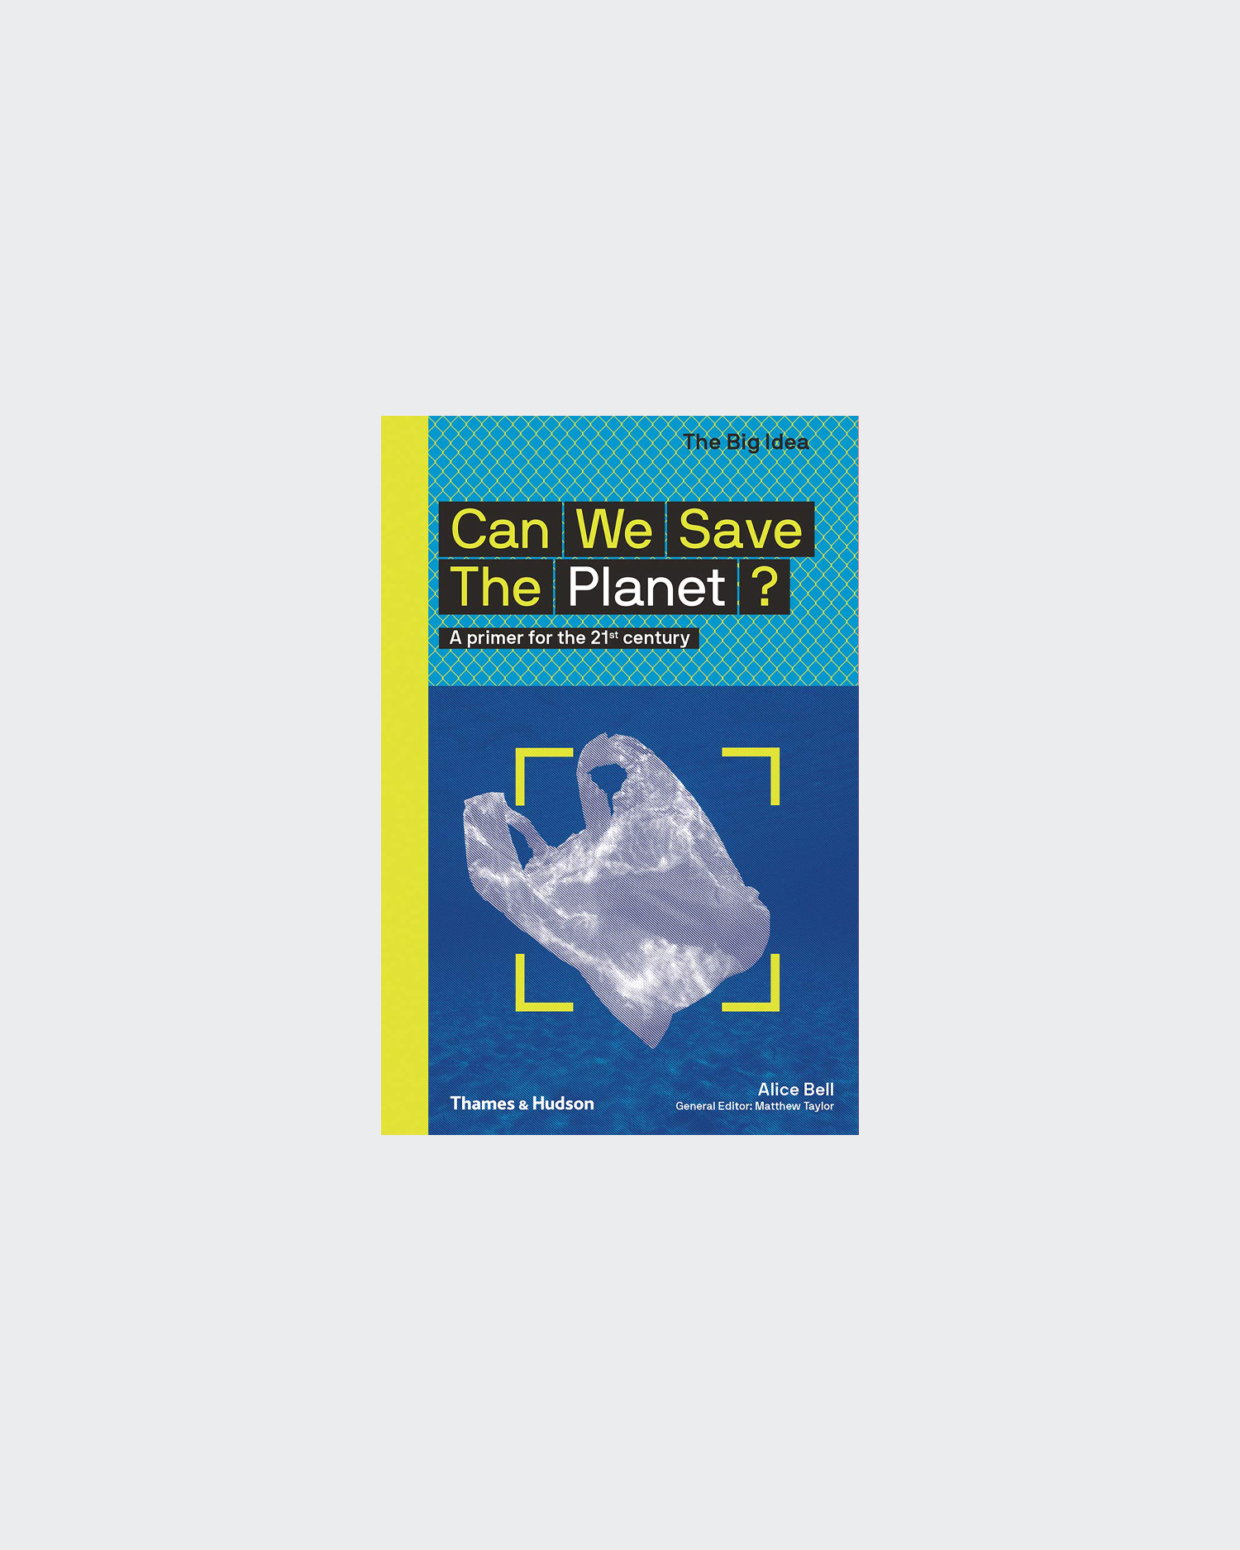 Books Can We Save The Planet?